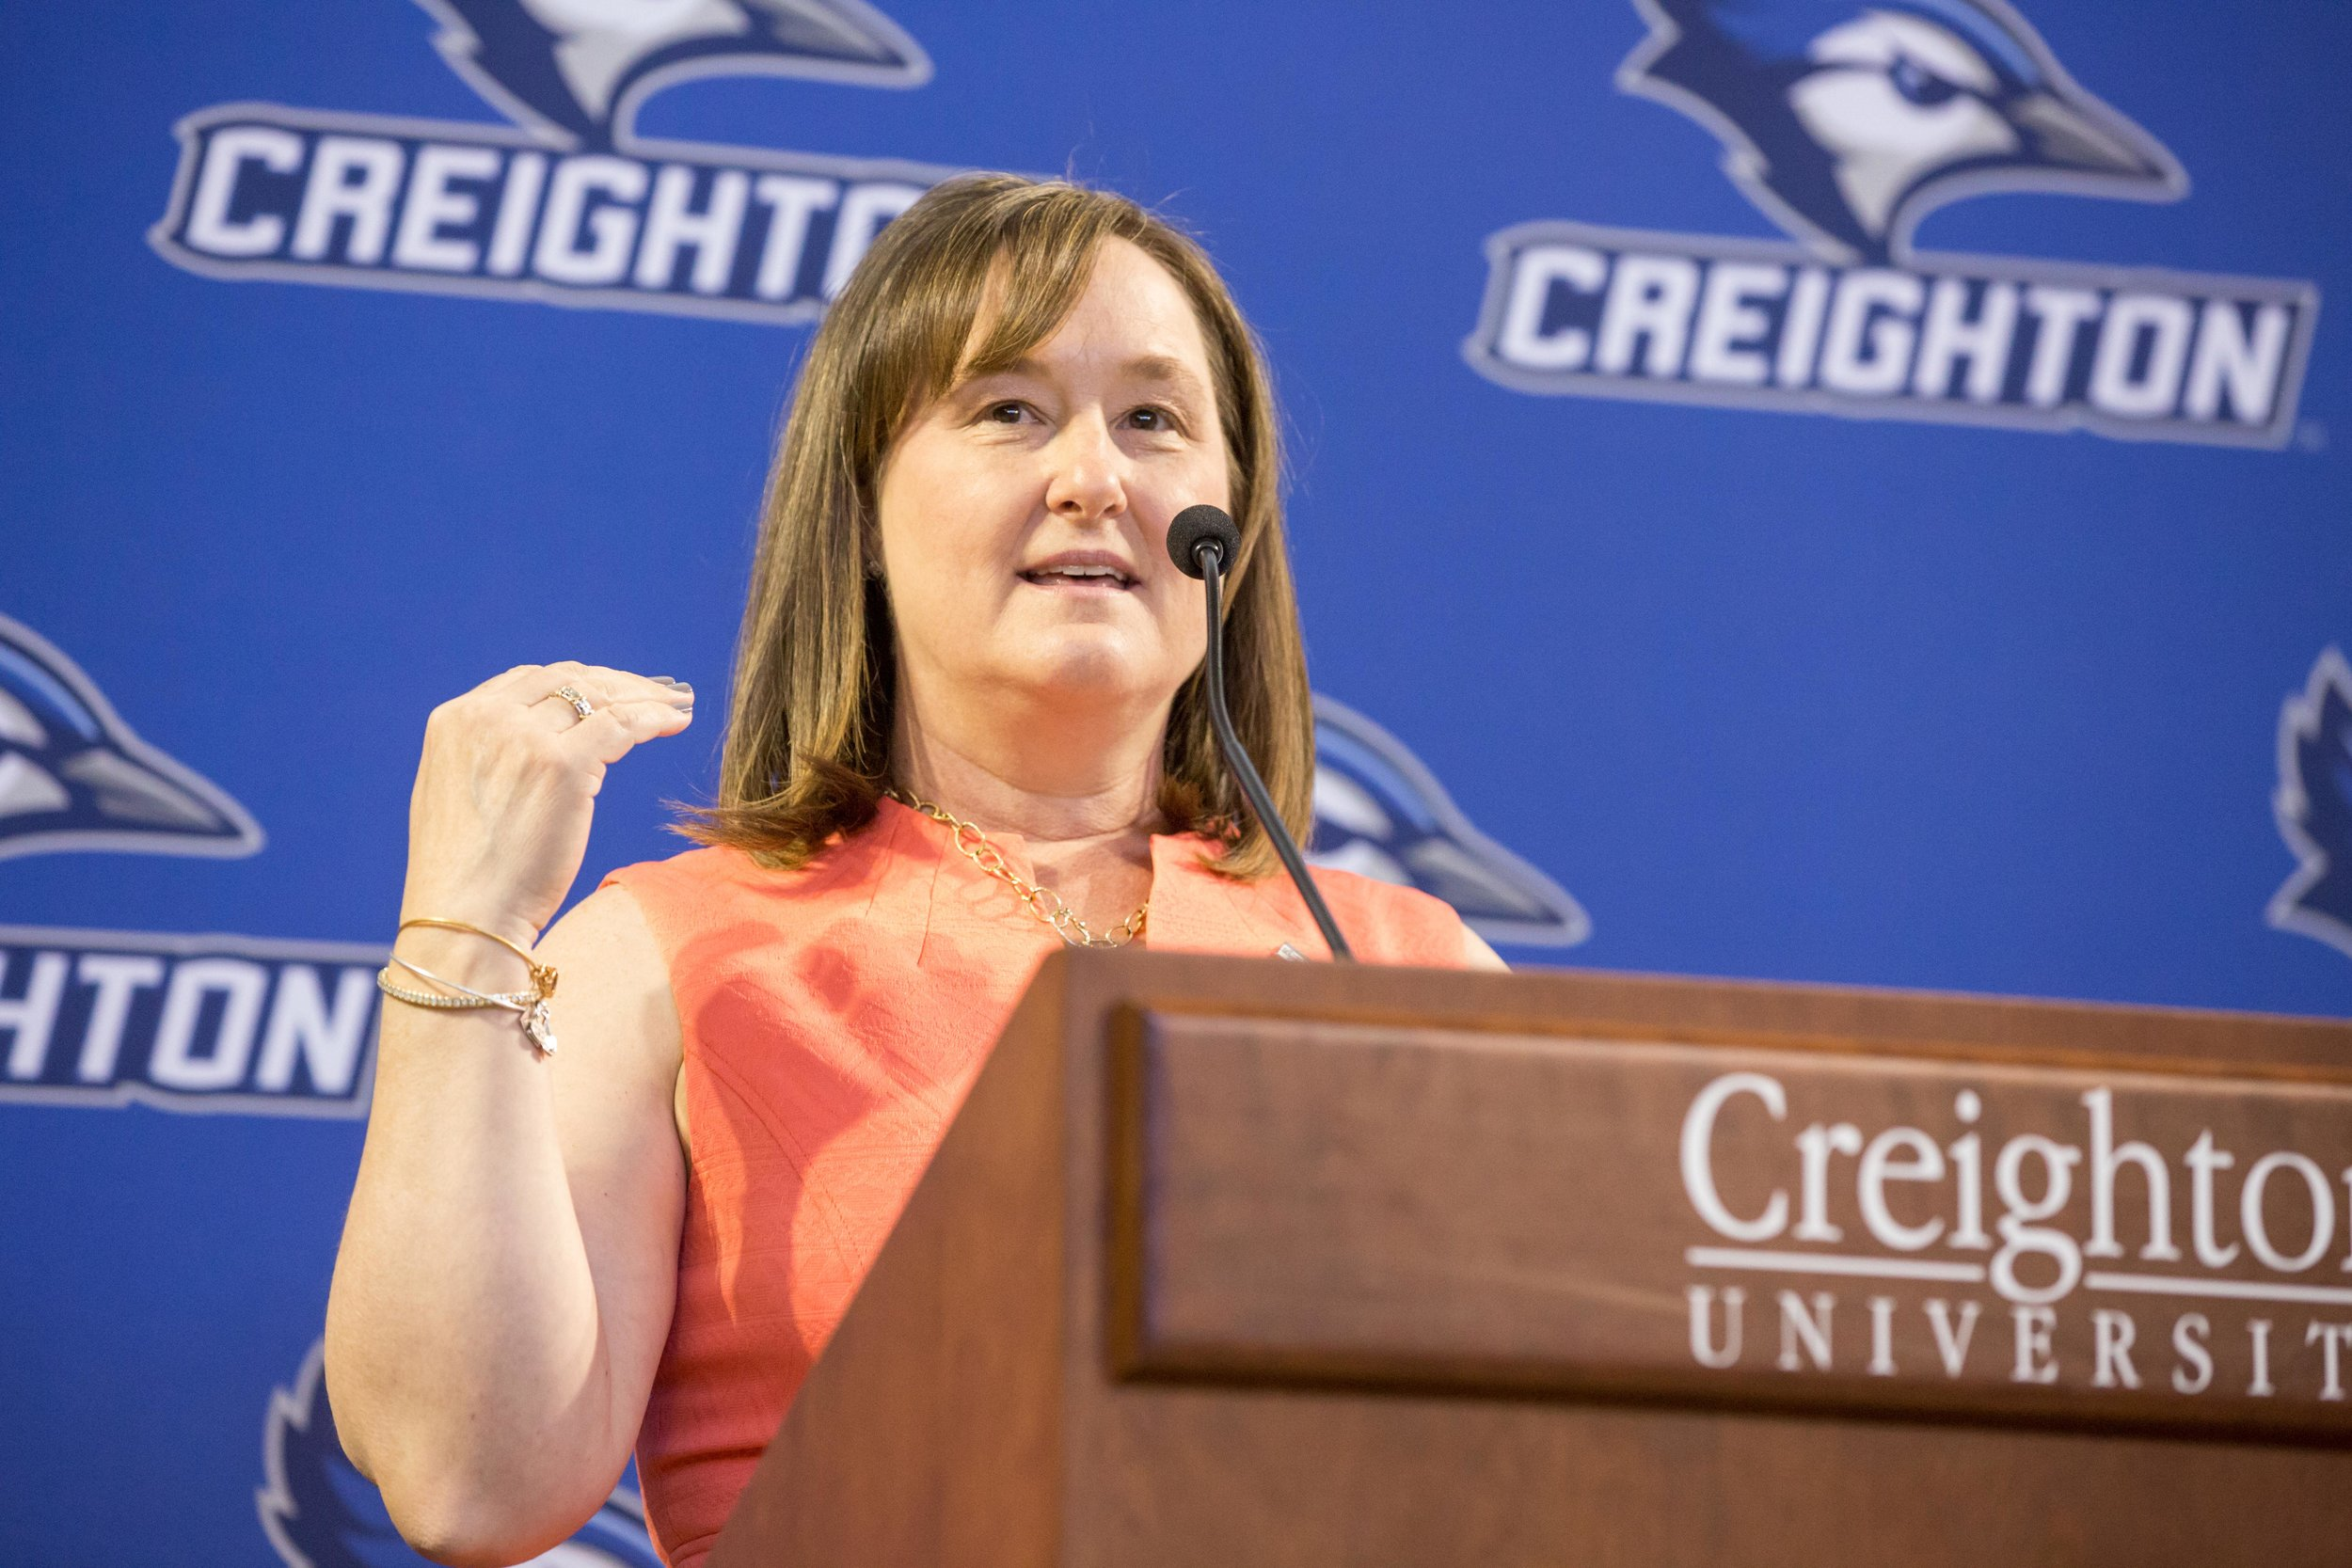 Former Creighton student-athlete Judy (Richmeier) Pritza received the Leaders for Life Award at the University's 2017 Leaders for Life Luncheon. Since its inception, Leaders for Life has raised more than $900,000 for endowed and annual scholarships for outstanding female leaders (photo courtesy of Creighton University)